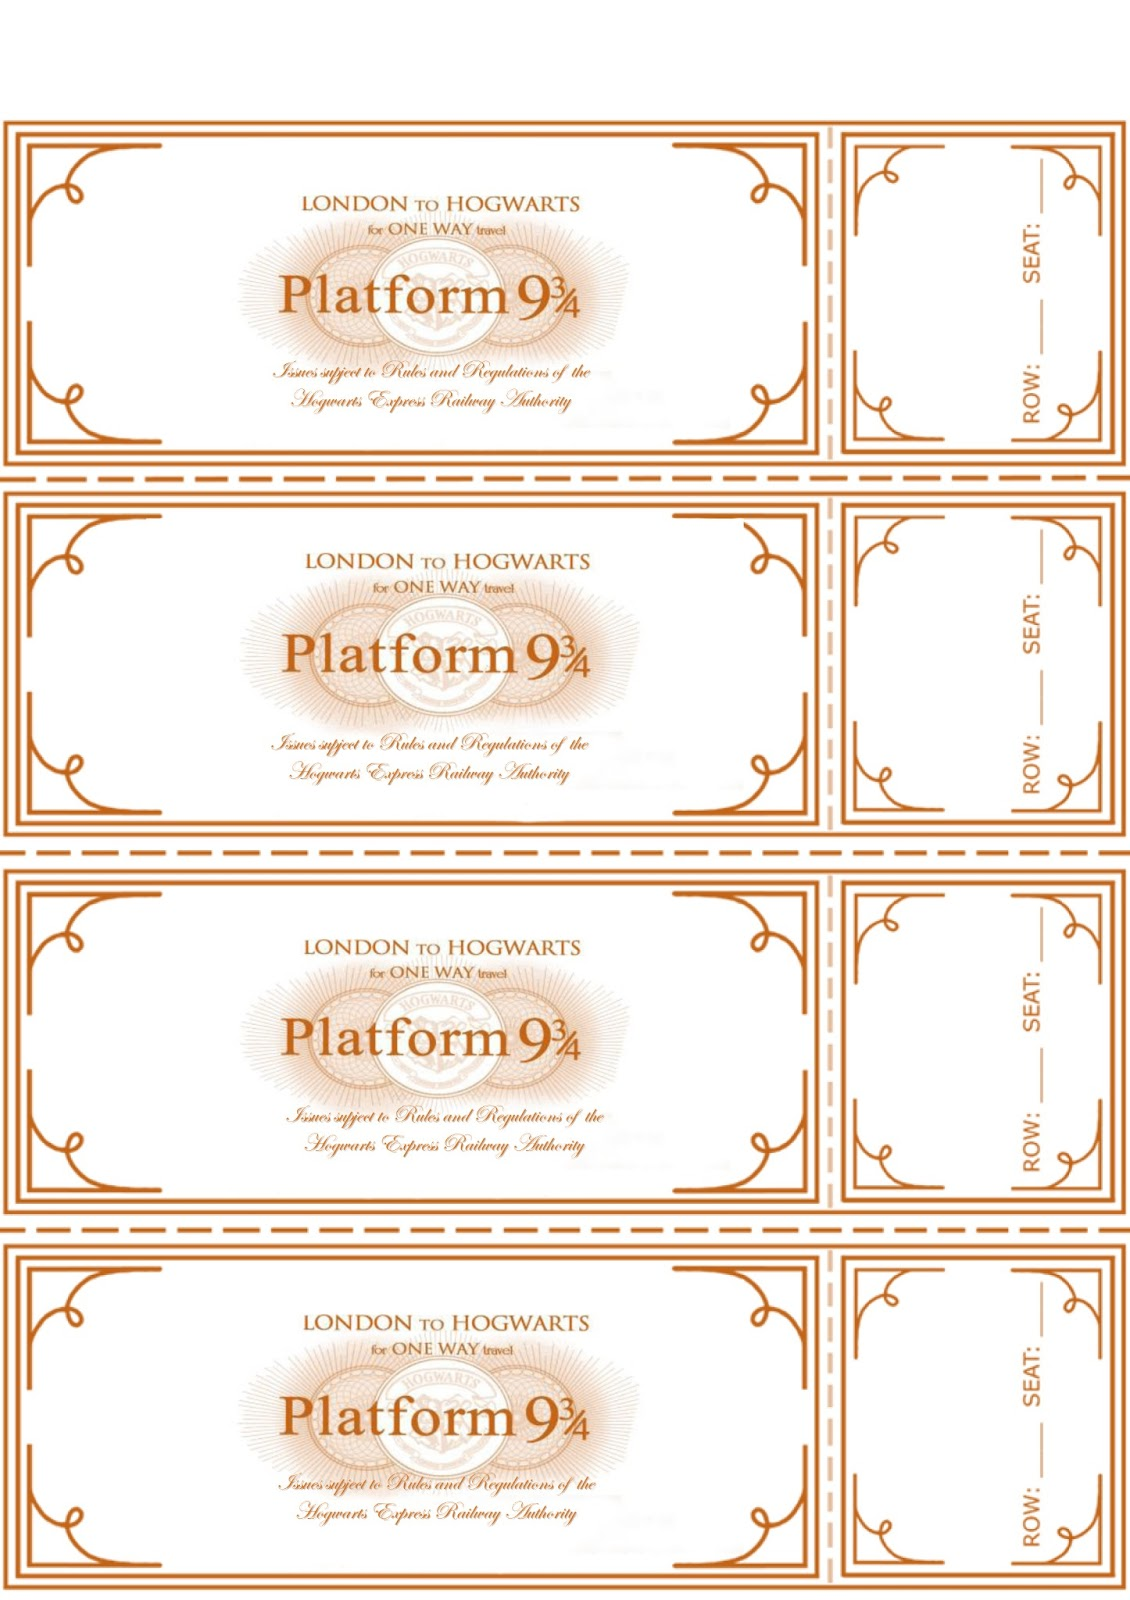 Enterprising image pertaining to hogwarts express ticket printable